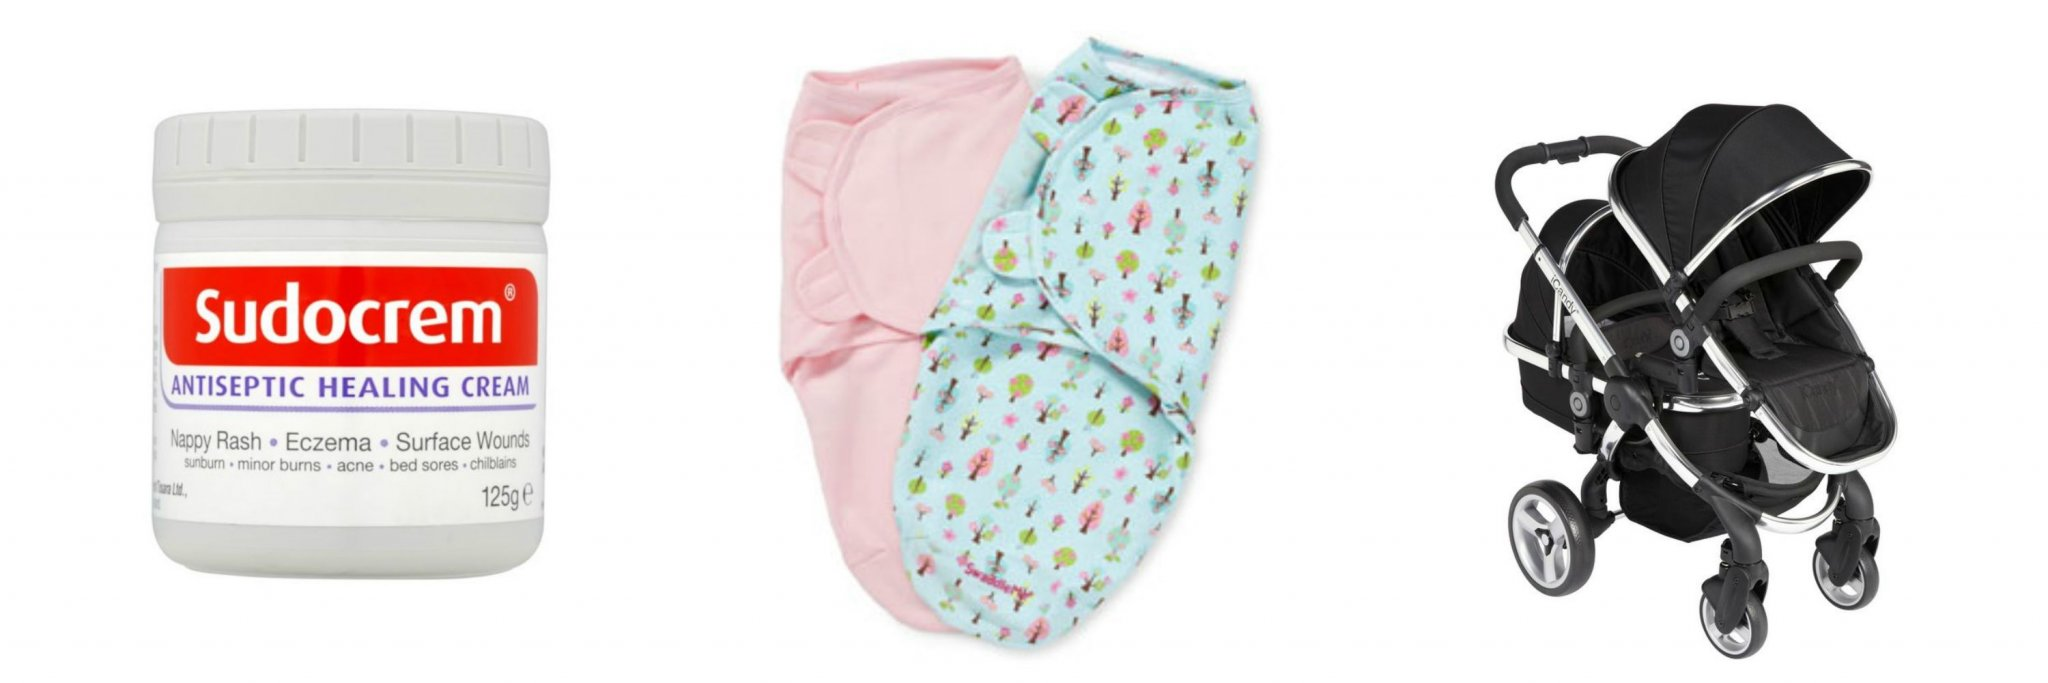 9 Newborn Baby Essential Products - lovefrommim.com Newborn Baby Essentials What do you need for a Newborn Baby Things you need for a Newborn Baby